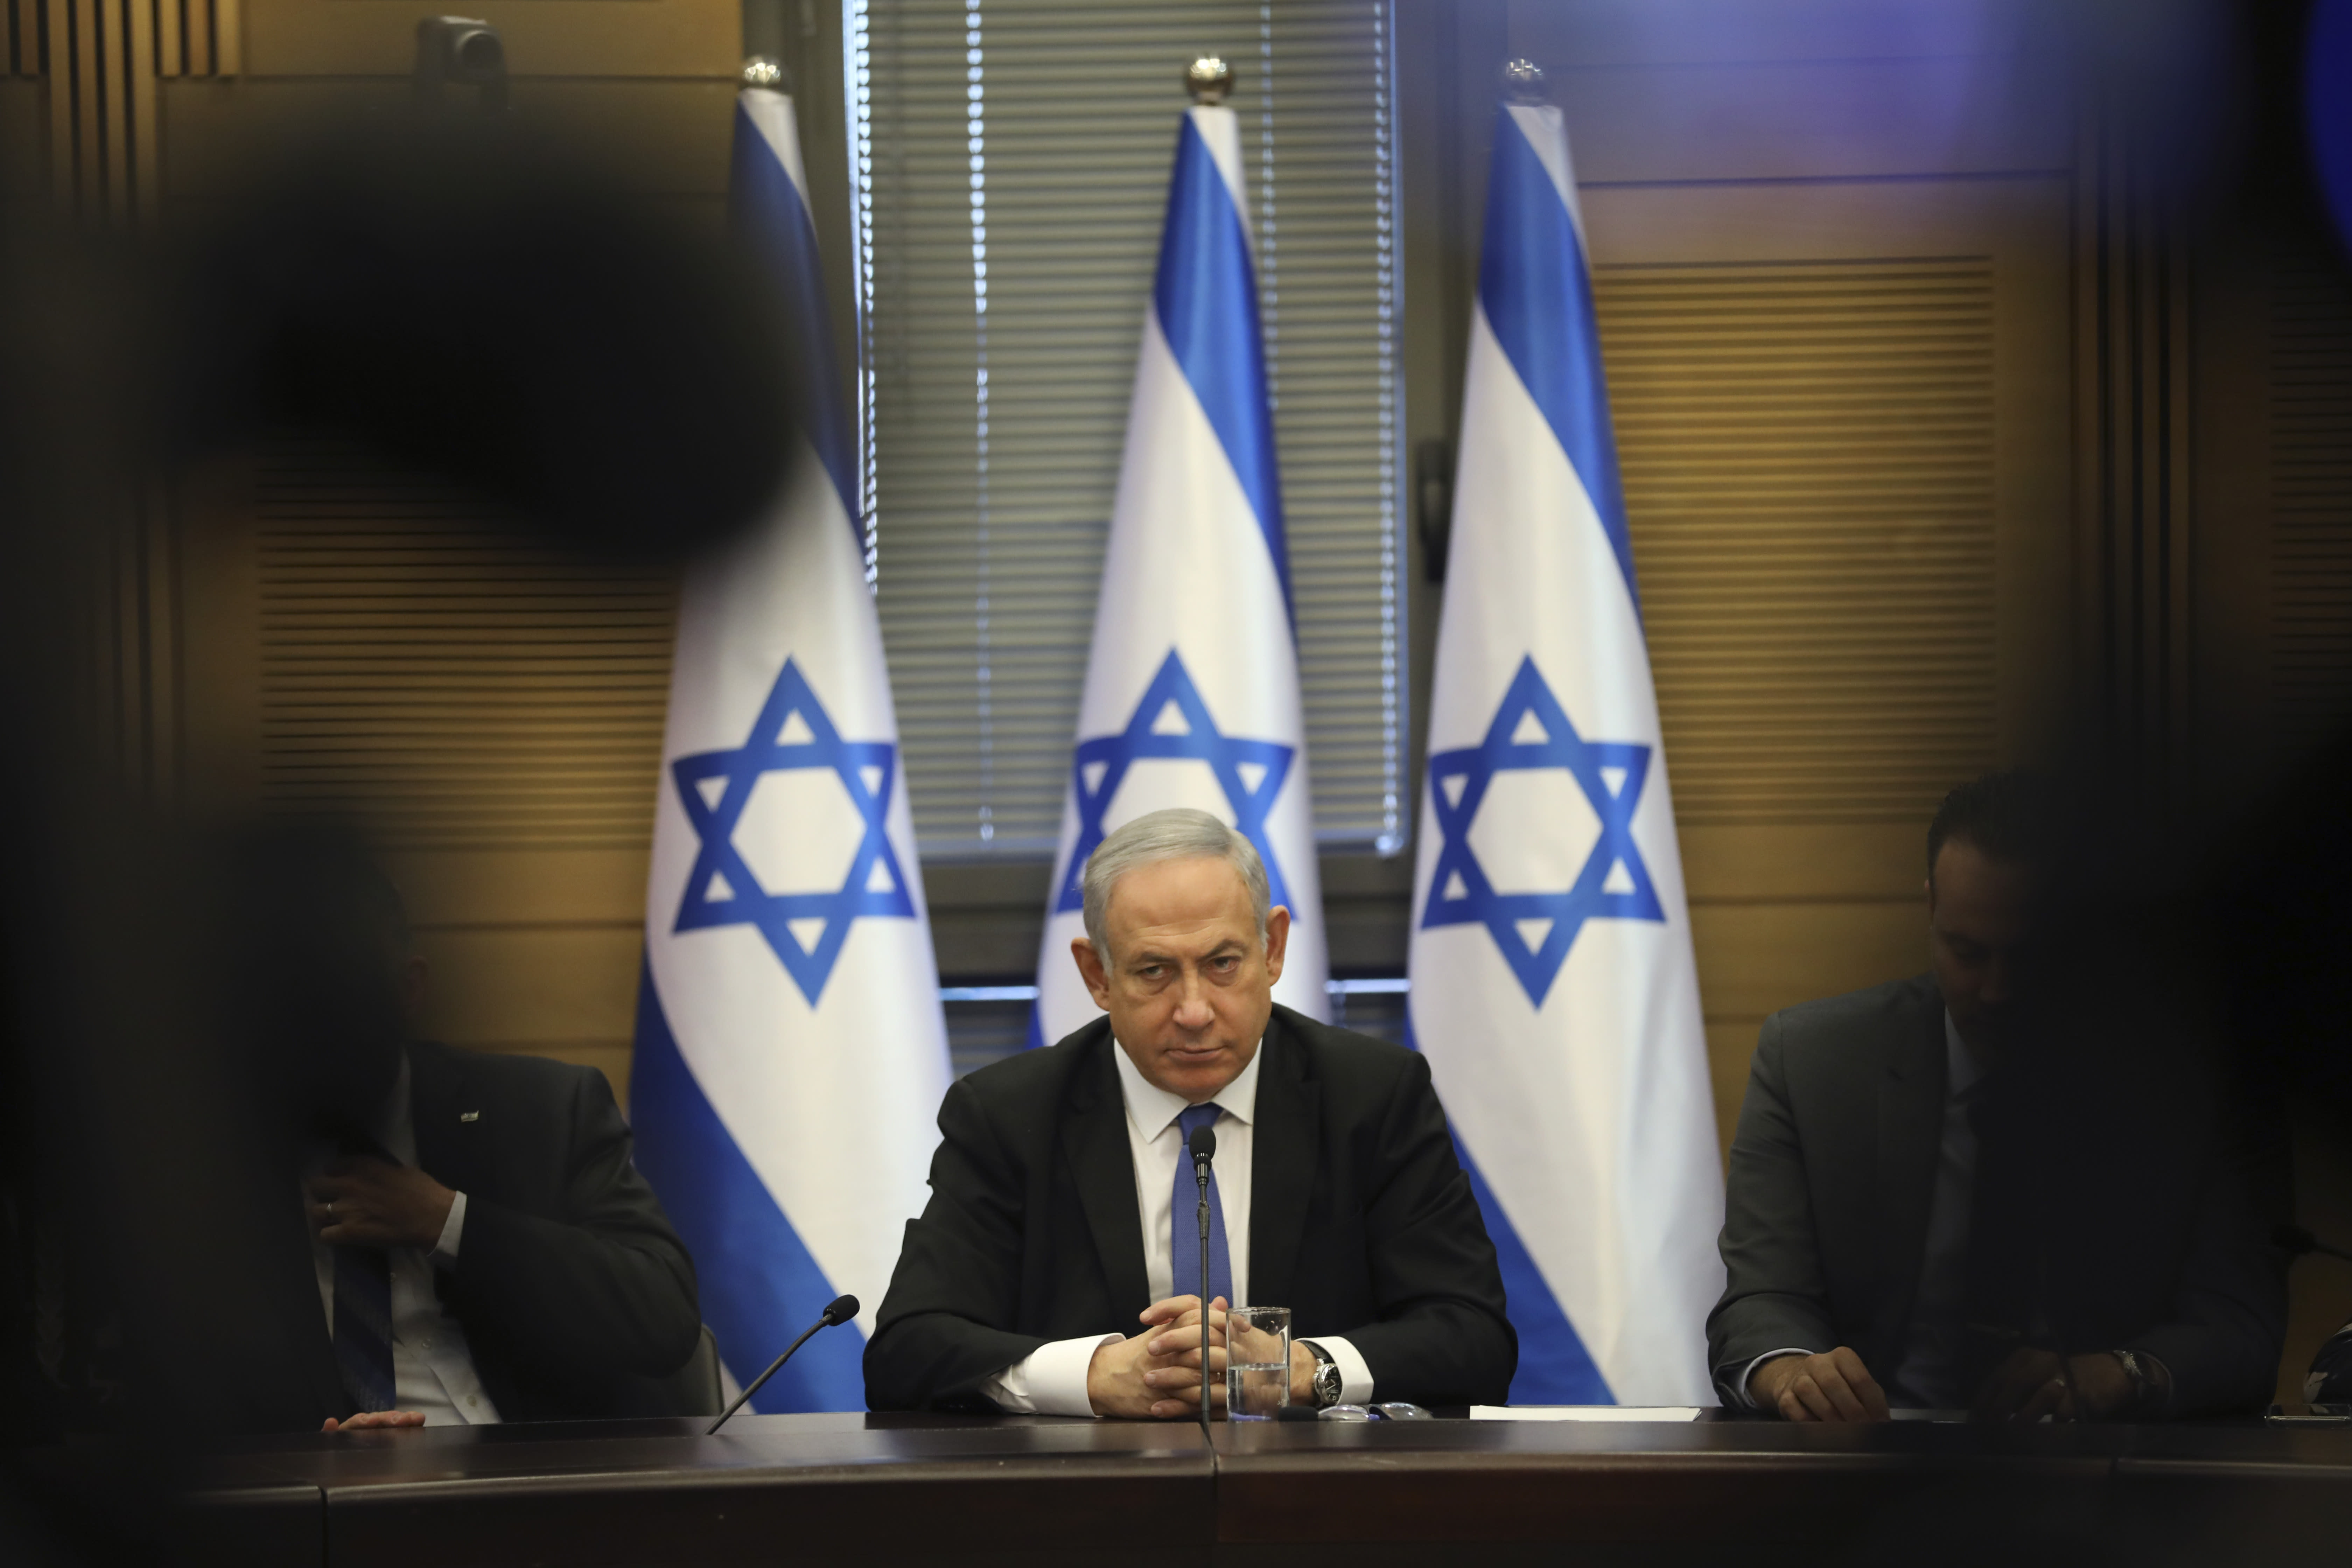 Israel PM Benjamin Netanyahu indicted on corruption charges